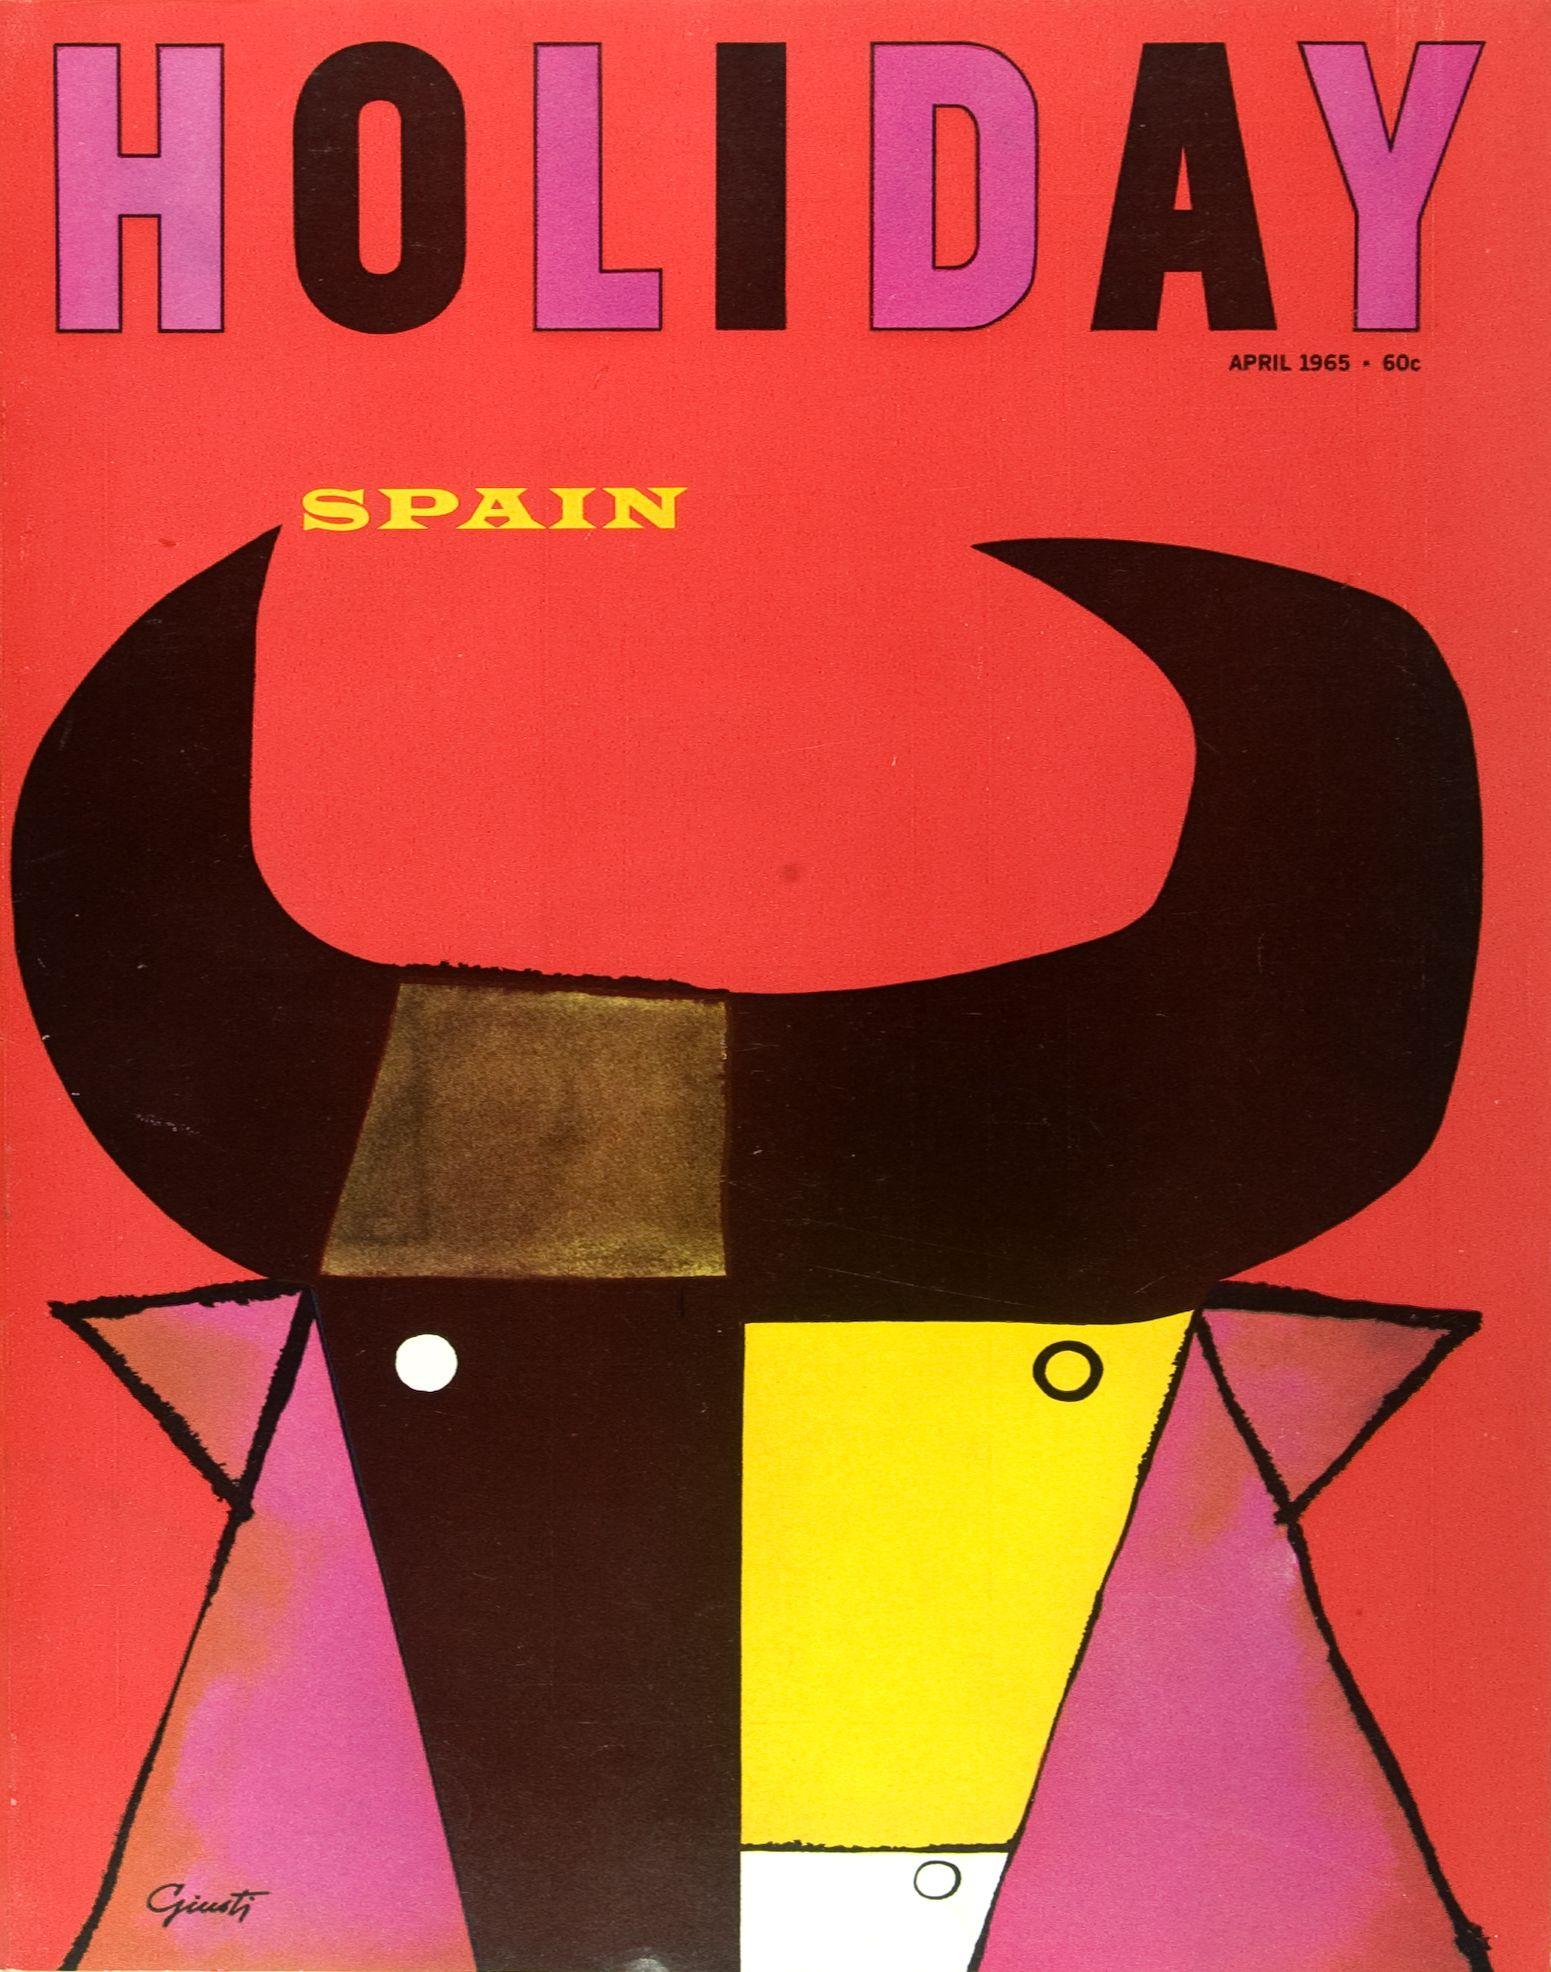 cmag107 holiday magazine cover by george giusti spain issue